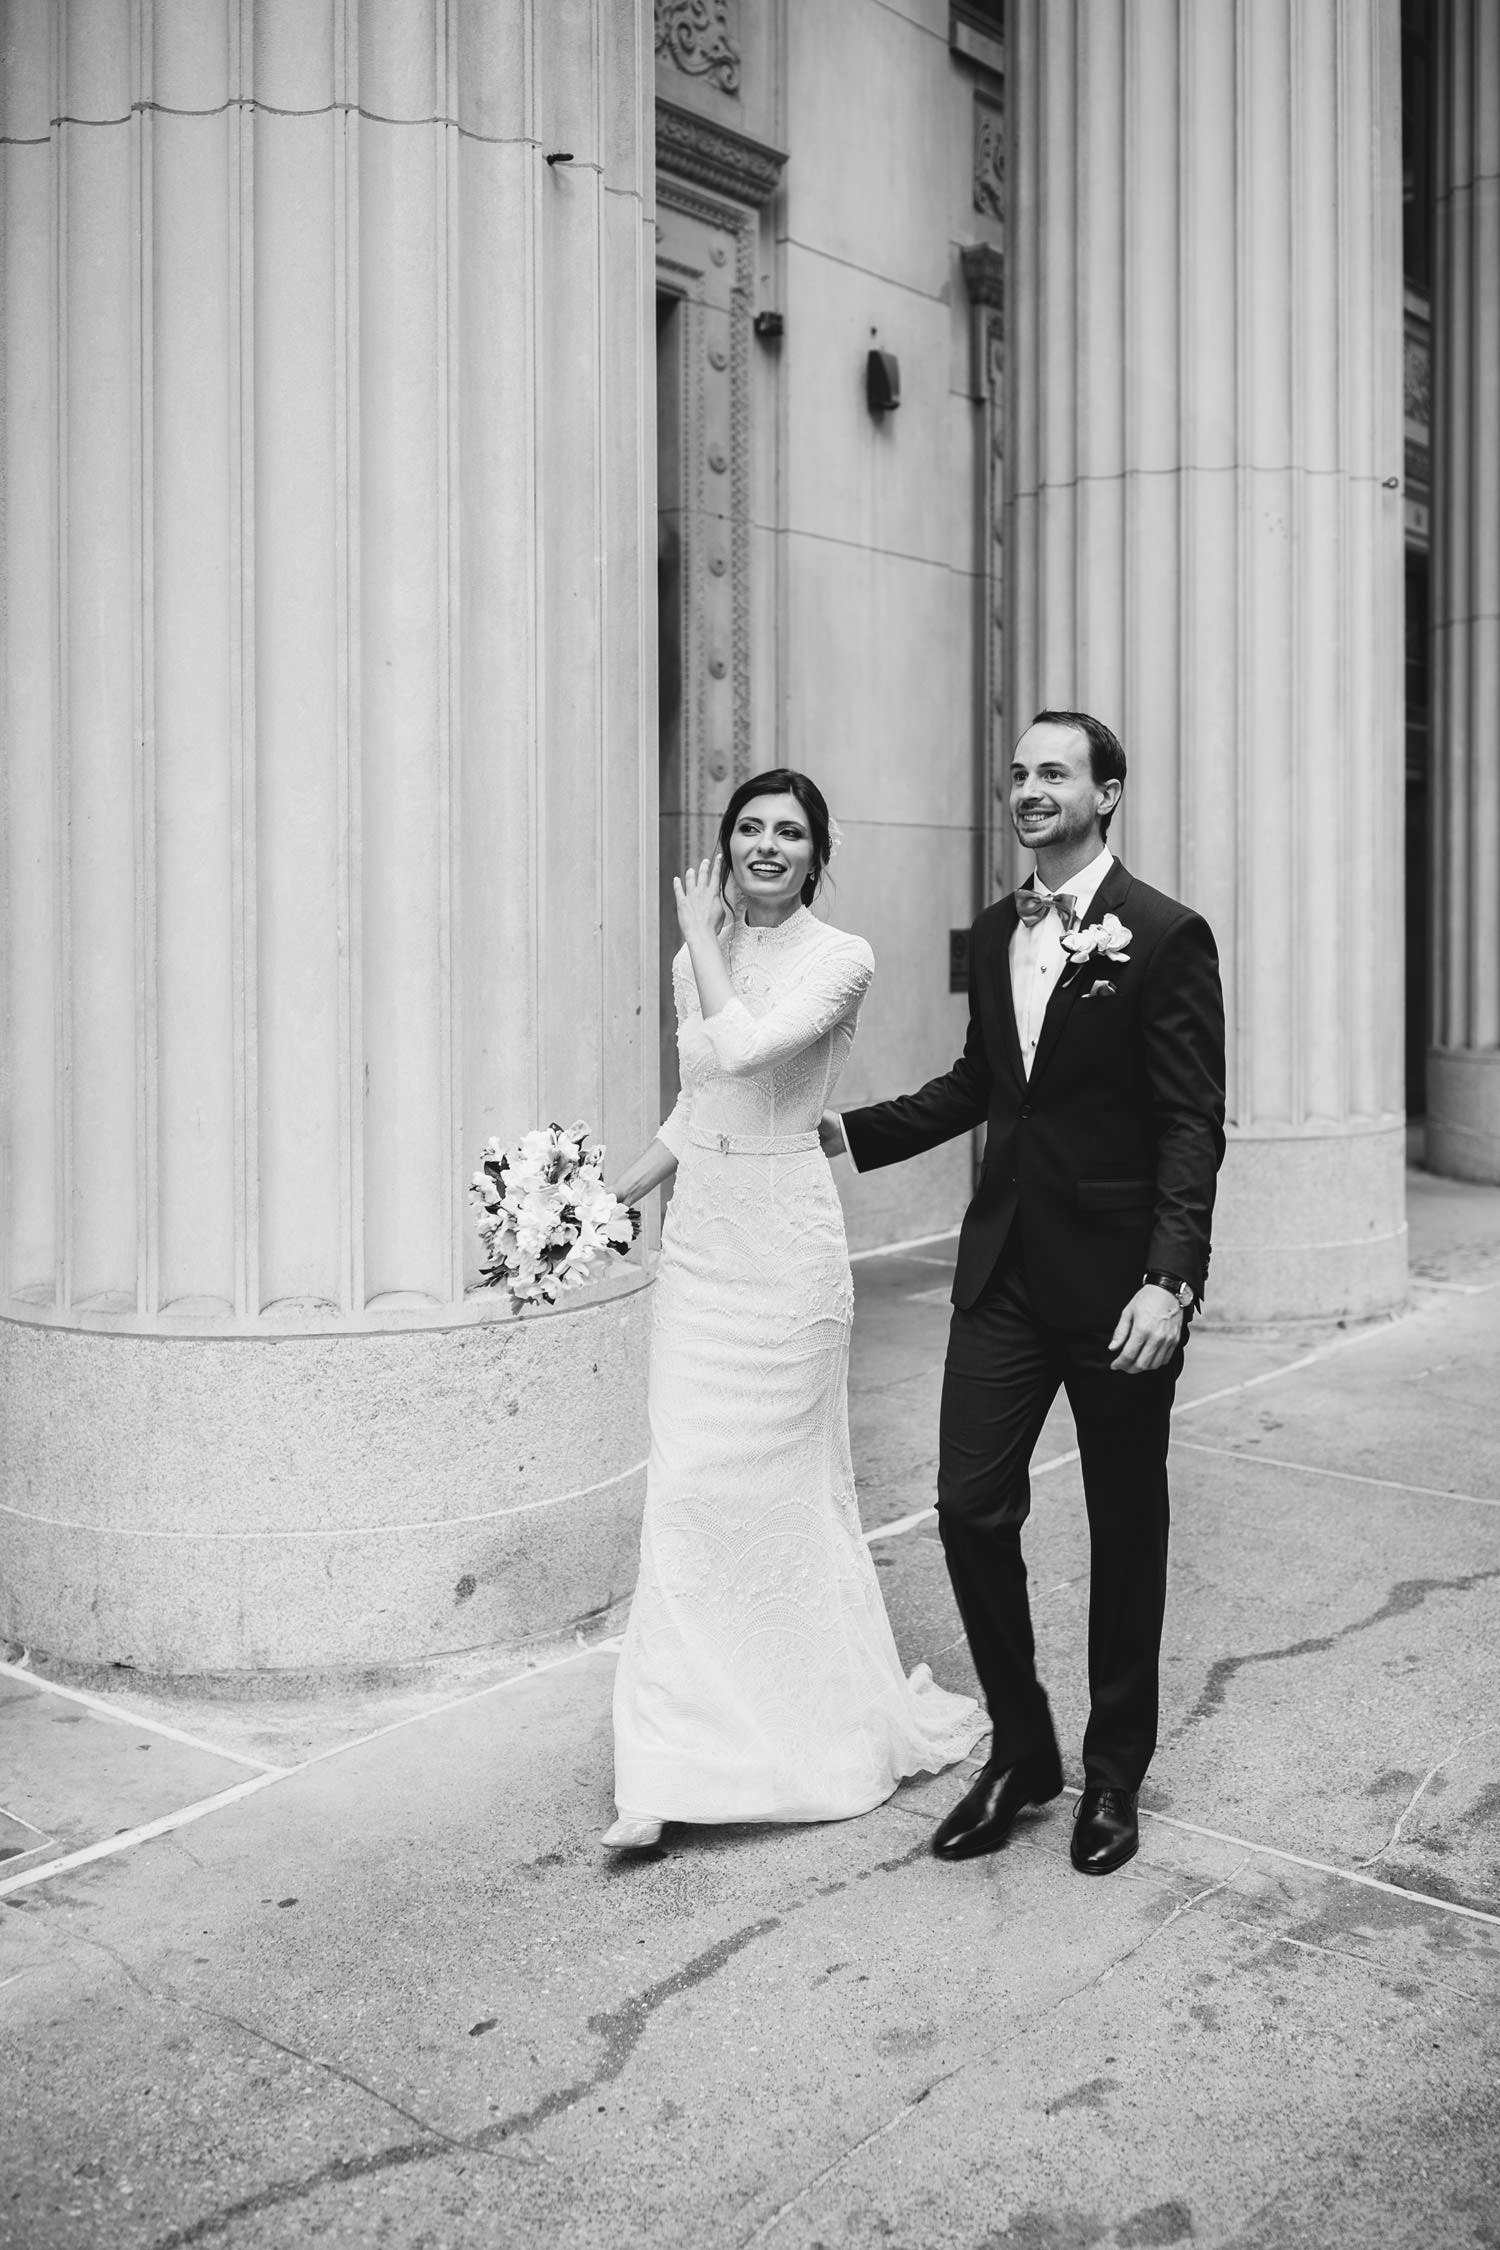 Bride and groom walk by Chicago board of trade in down town Chicago